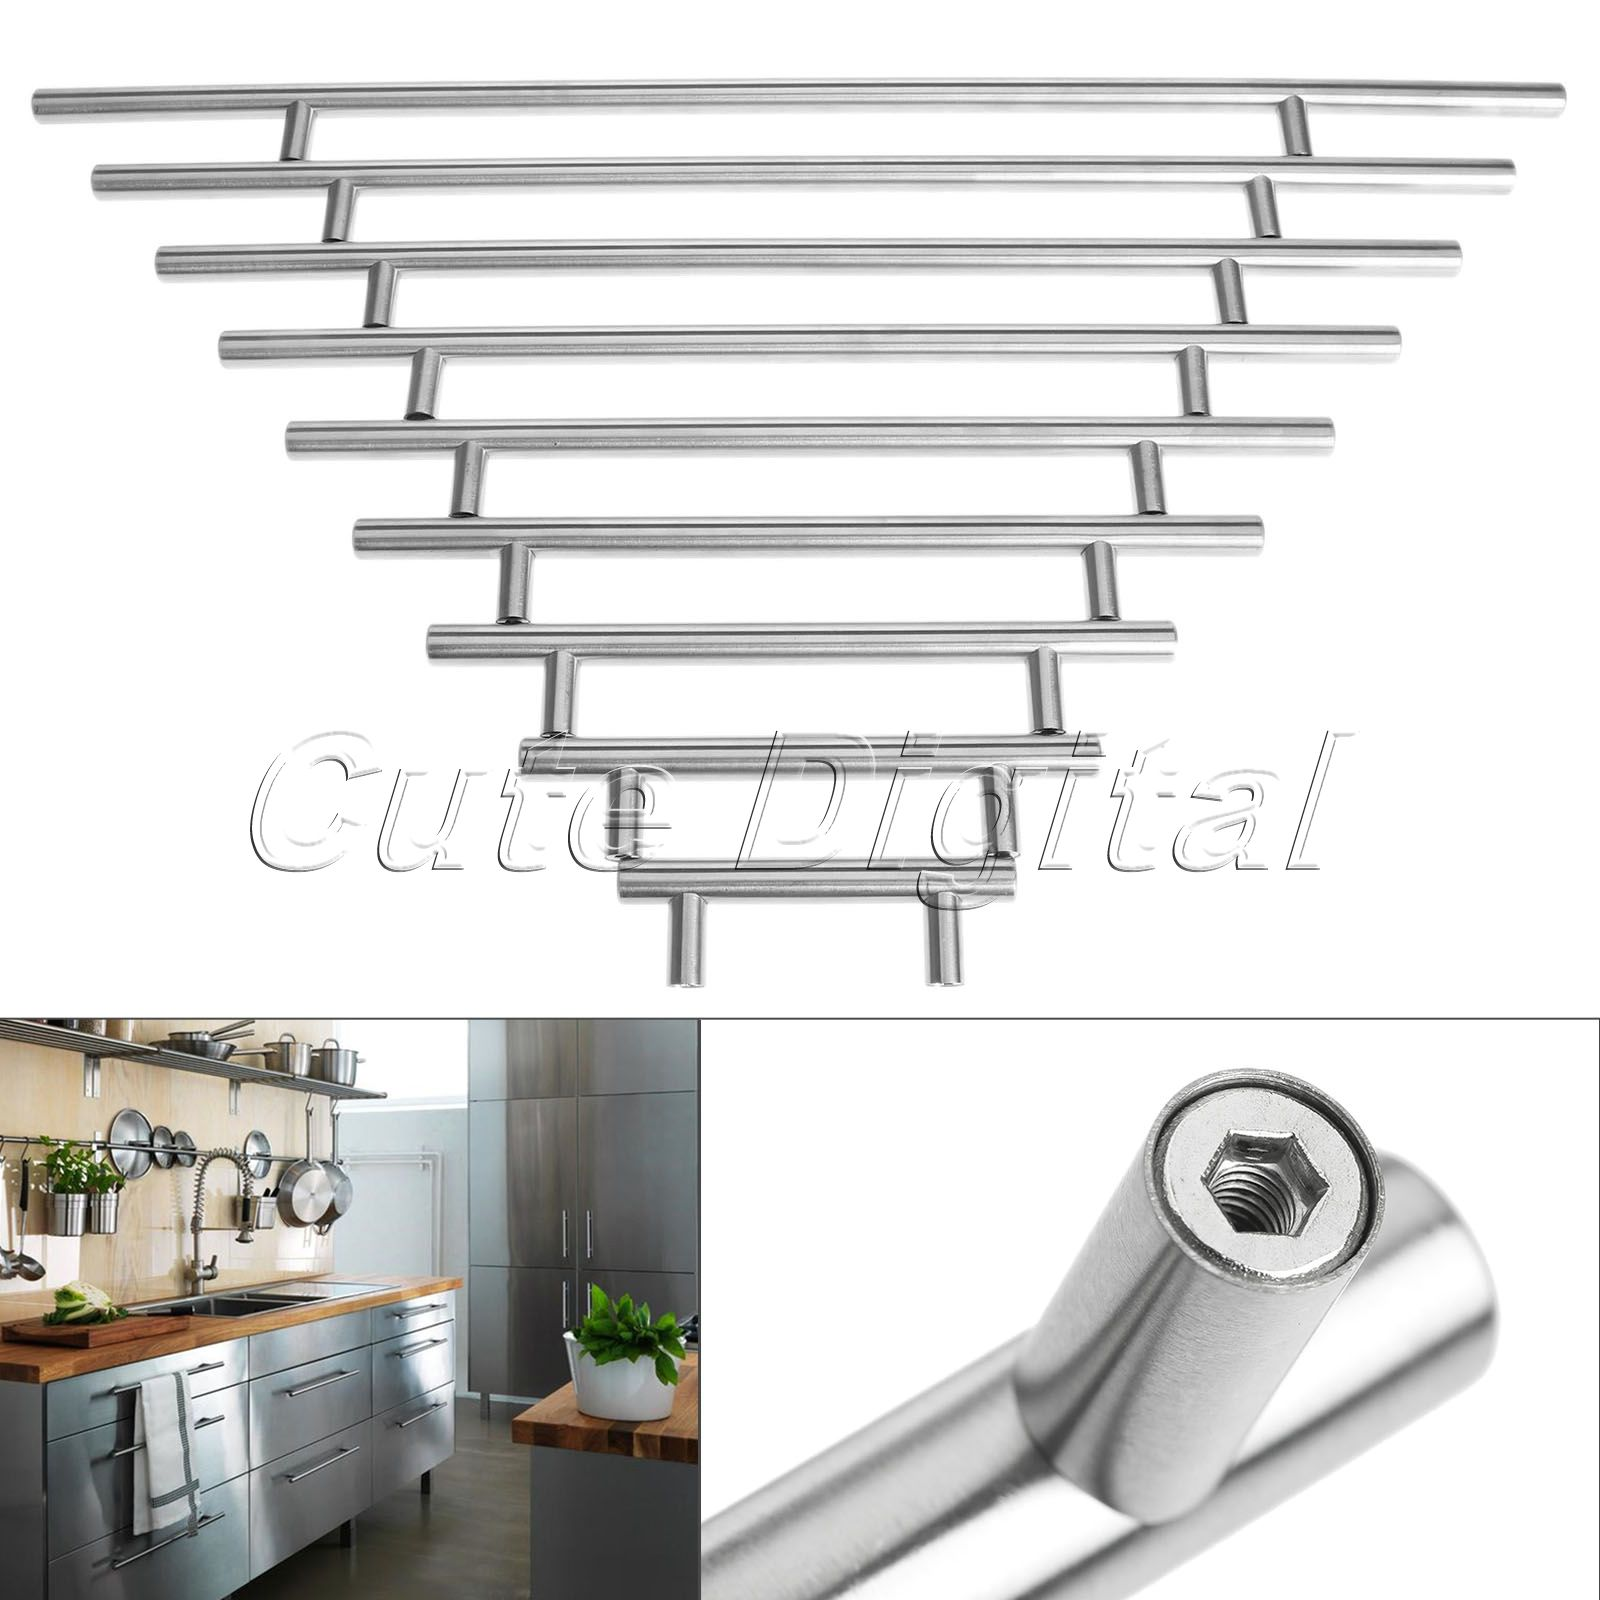 Stainless steel t bar furniture handles door kitchen for Bar handles for kitchen cabinets